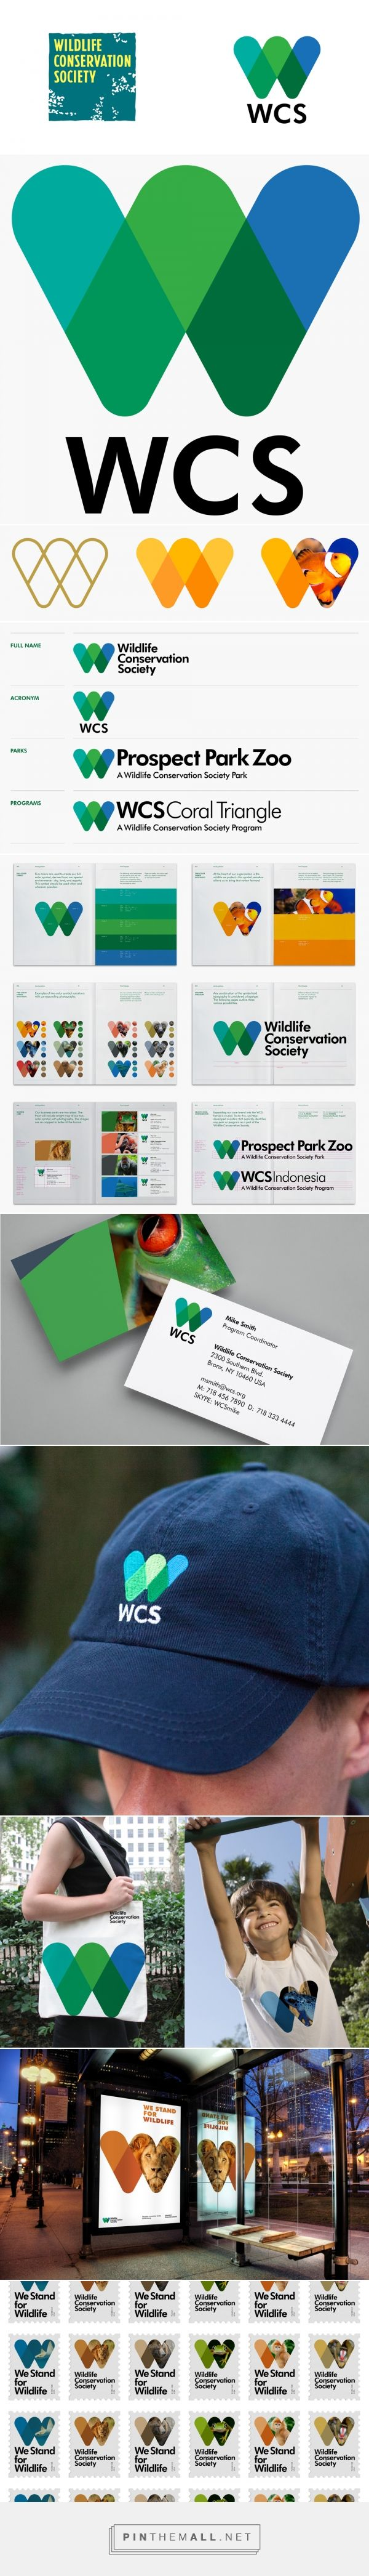 Brand New: New Logo and Identity for Wildlife Conservation Society by Pentagram…